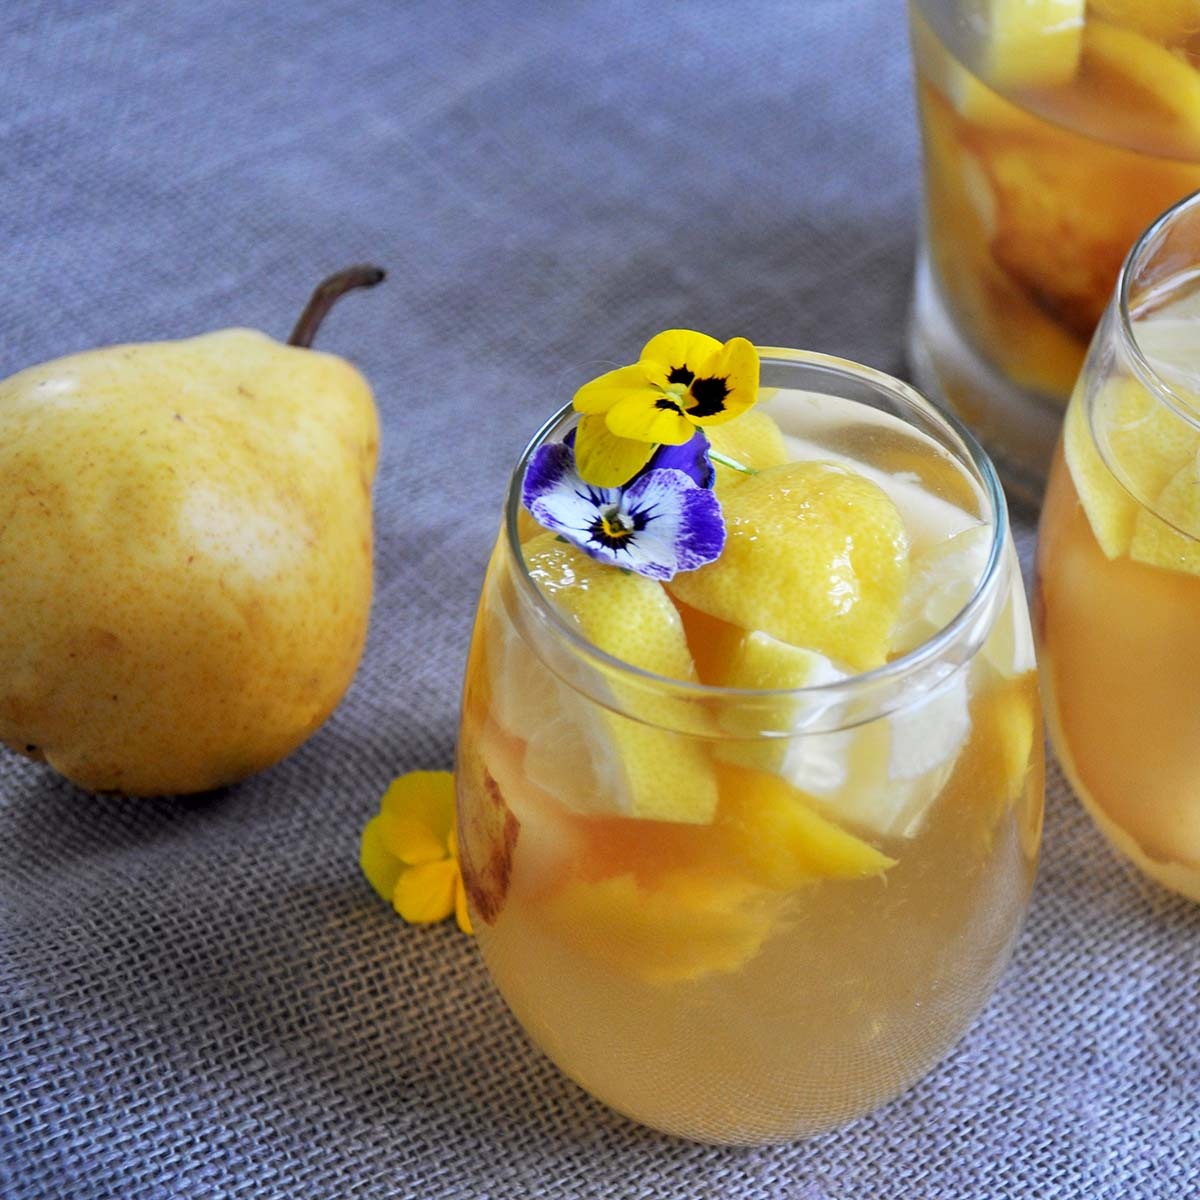 Glass of our best white sangria recipe with some viola flowers garnishing it with a pear and pitcher in the background